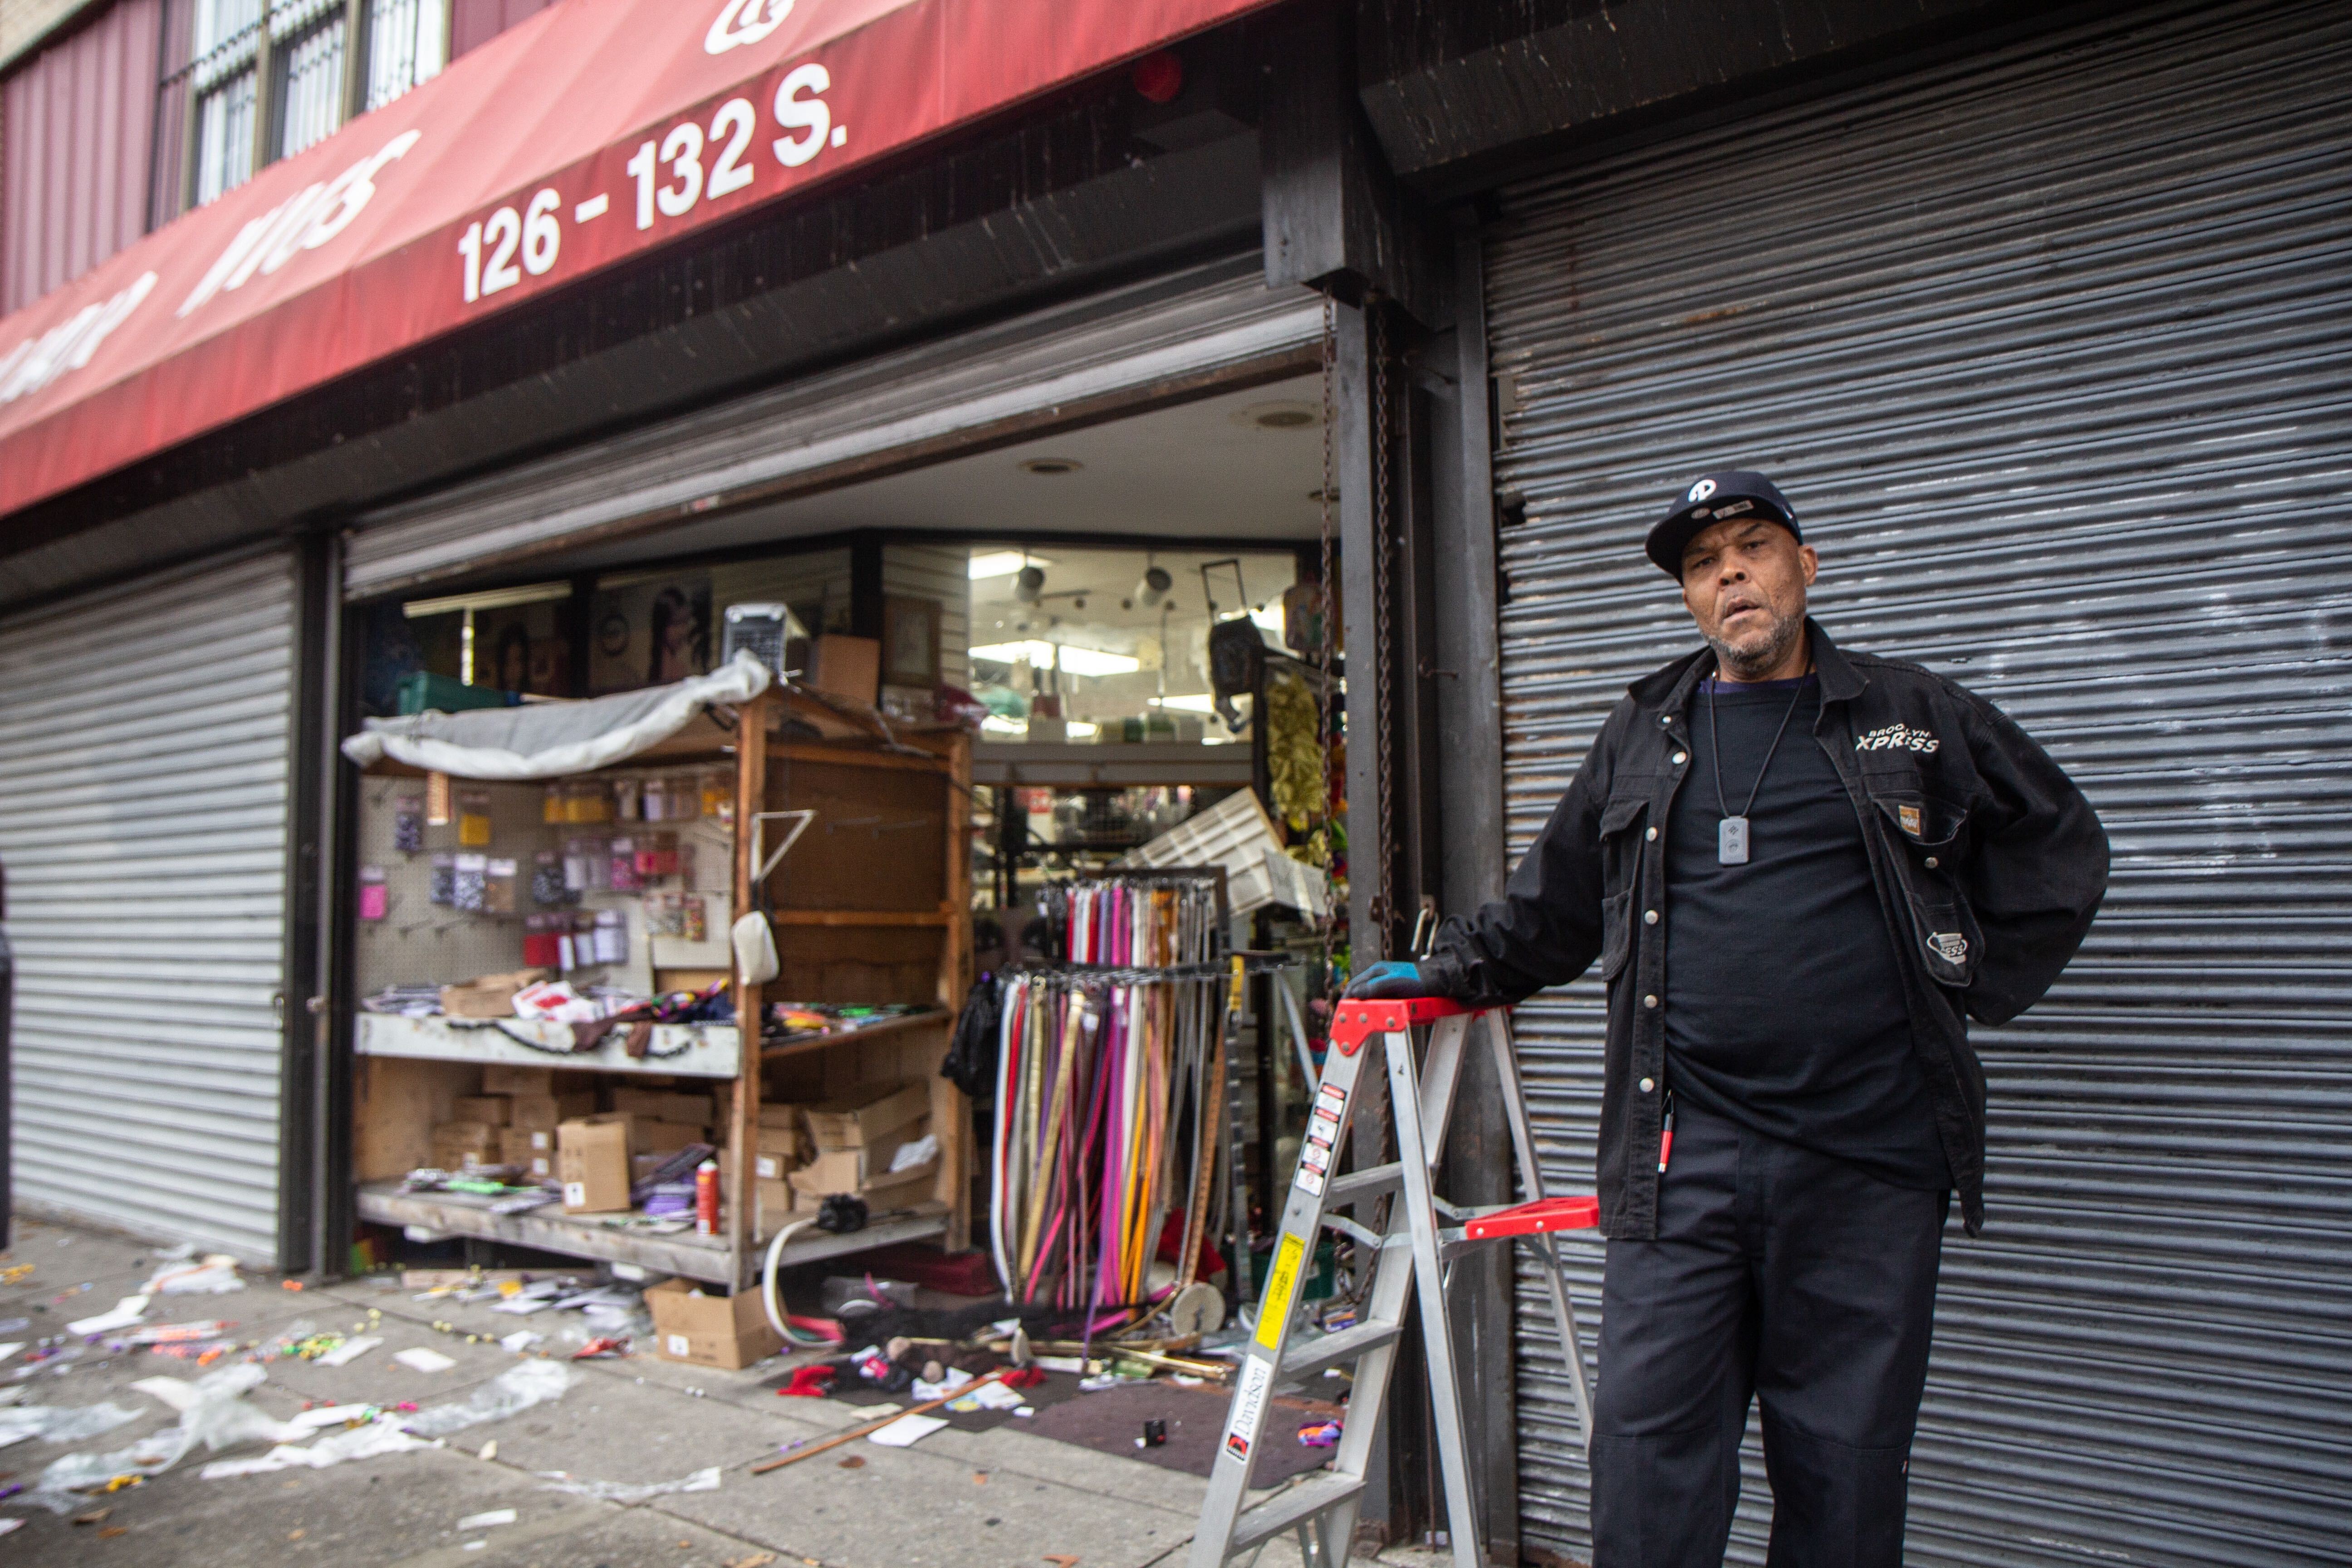 Steven Hall works at Q&S beauty supply and argues with bystanders defending looting on 52nd Street